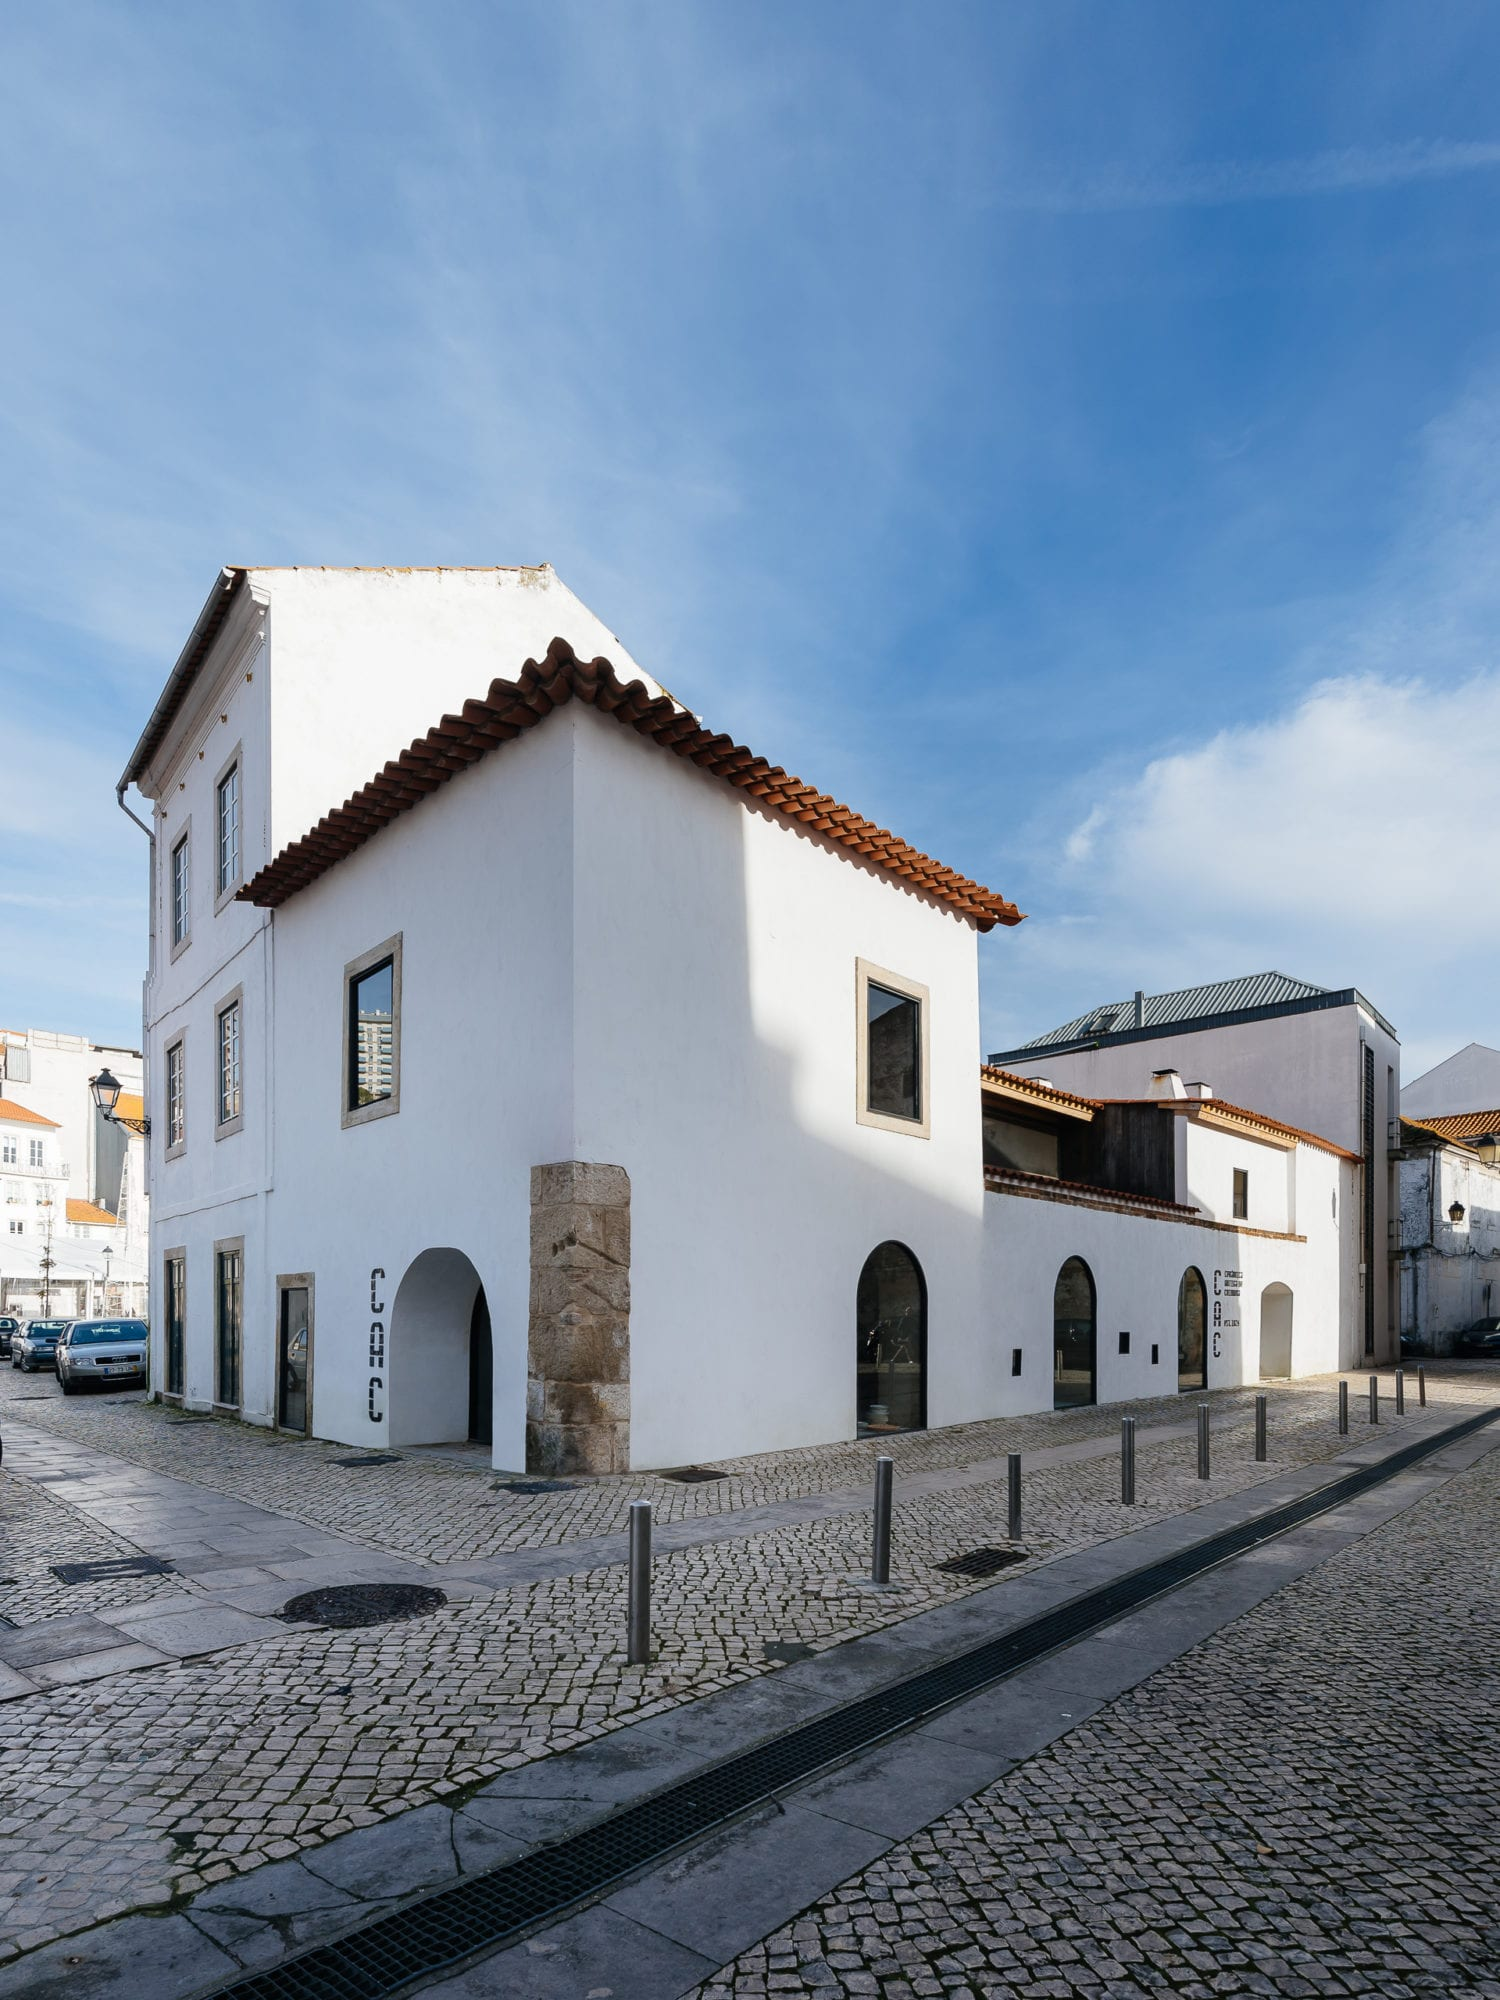 Luisa Bebiano And Atelier Do Corvo Renovation Old Ceramic Society Of Coimbra 18th Century Building Yellowtrace 02